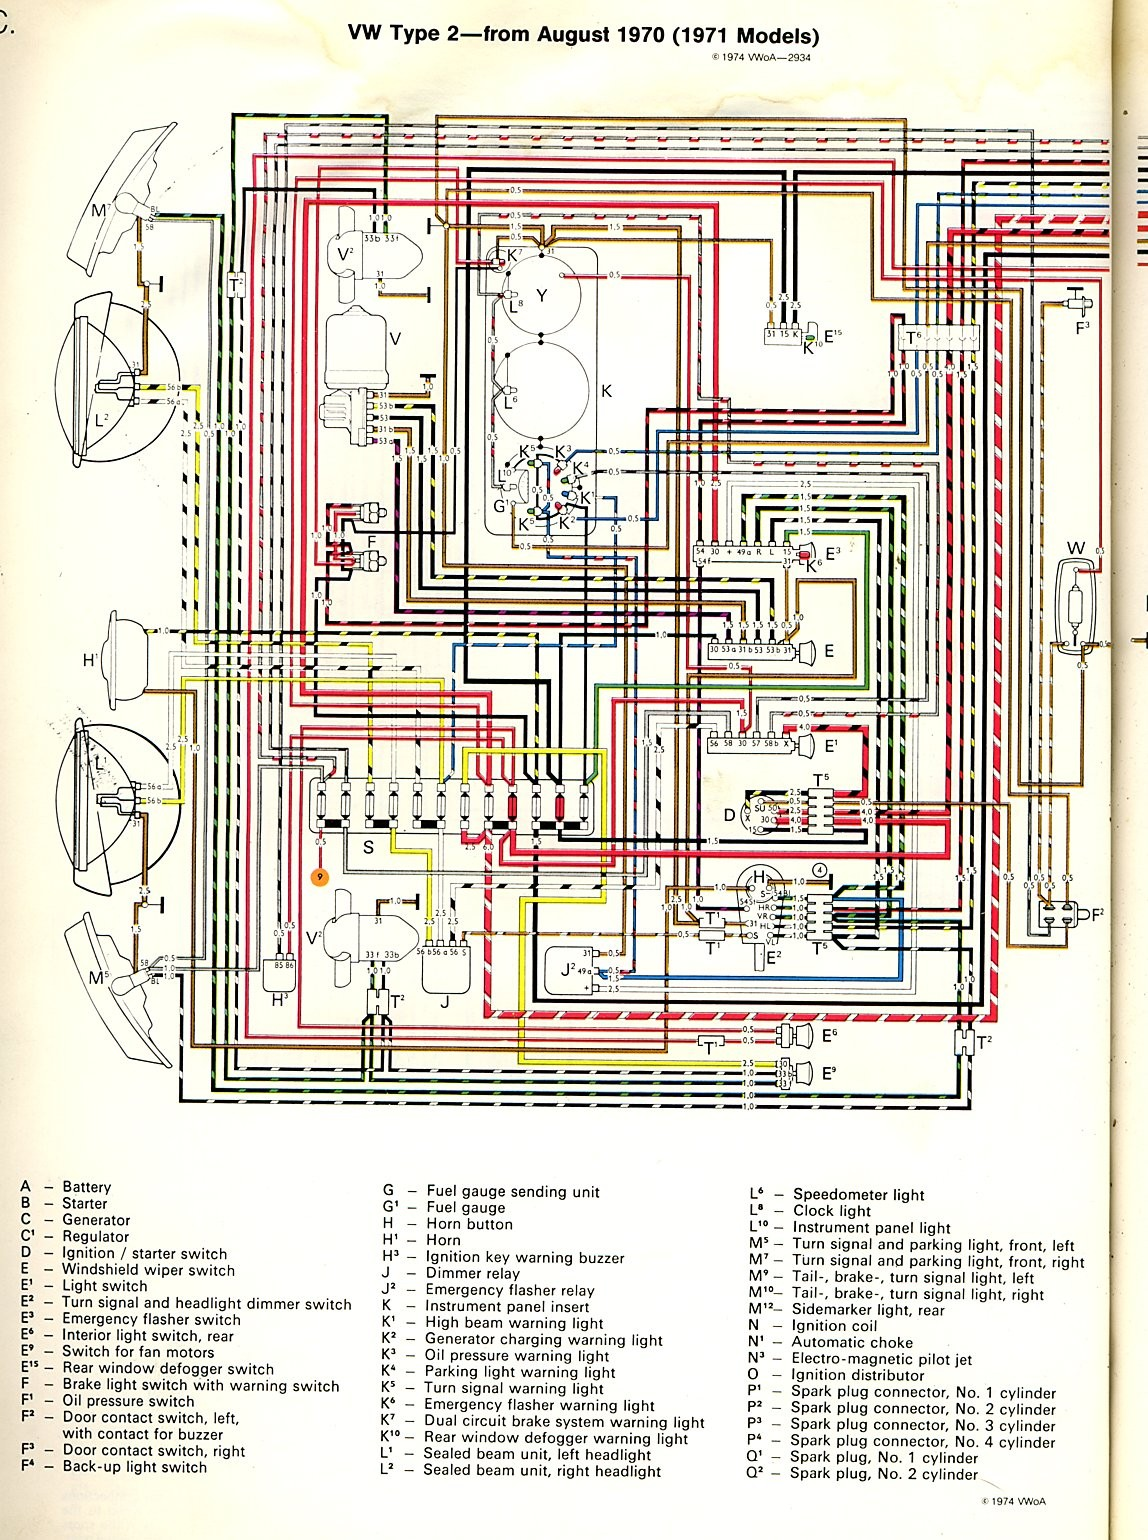 1974 vw beetle wiring diagram new wiring diagram image 1972 super beetle wiring diagram thesamba type 2 wiring diagrams from 1974 vw beetle wiring diagram , source thesamba com baybus 71a